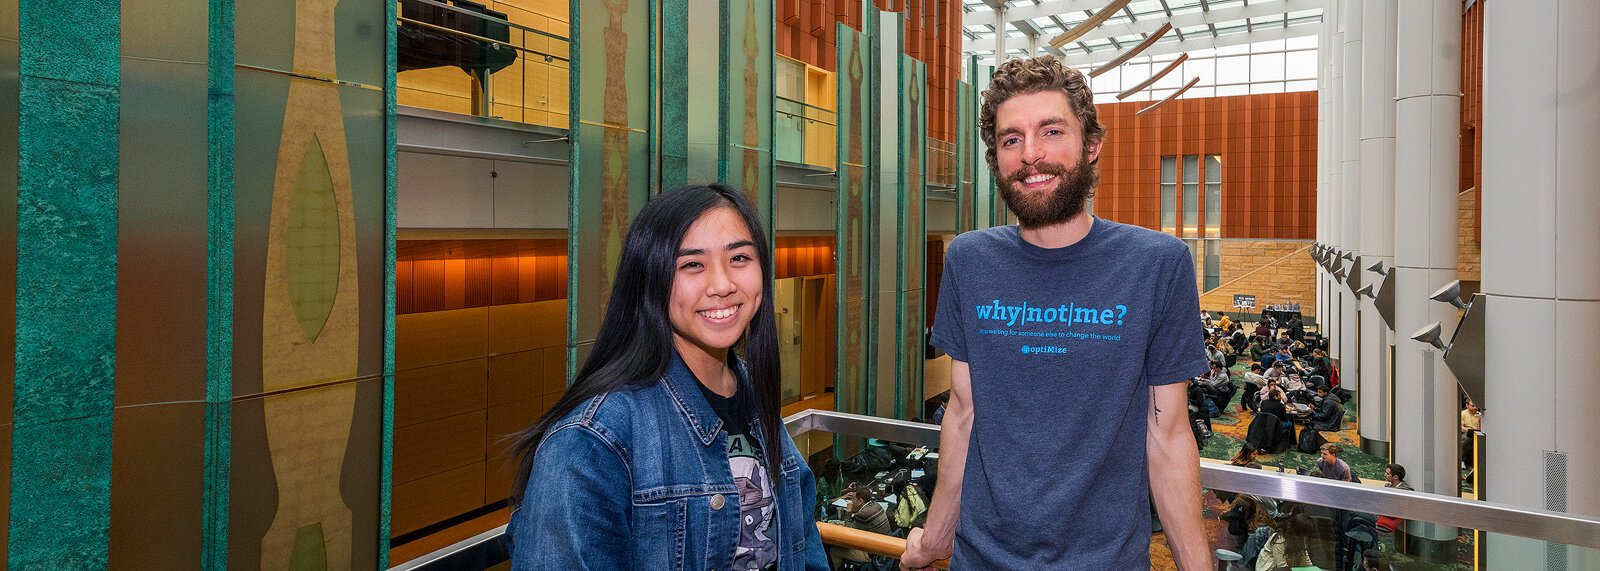 Kirsten Lam and Jeff Sorensen of optiMize.